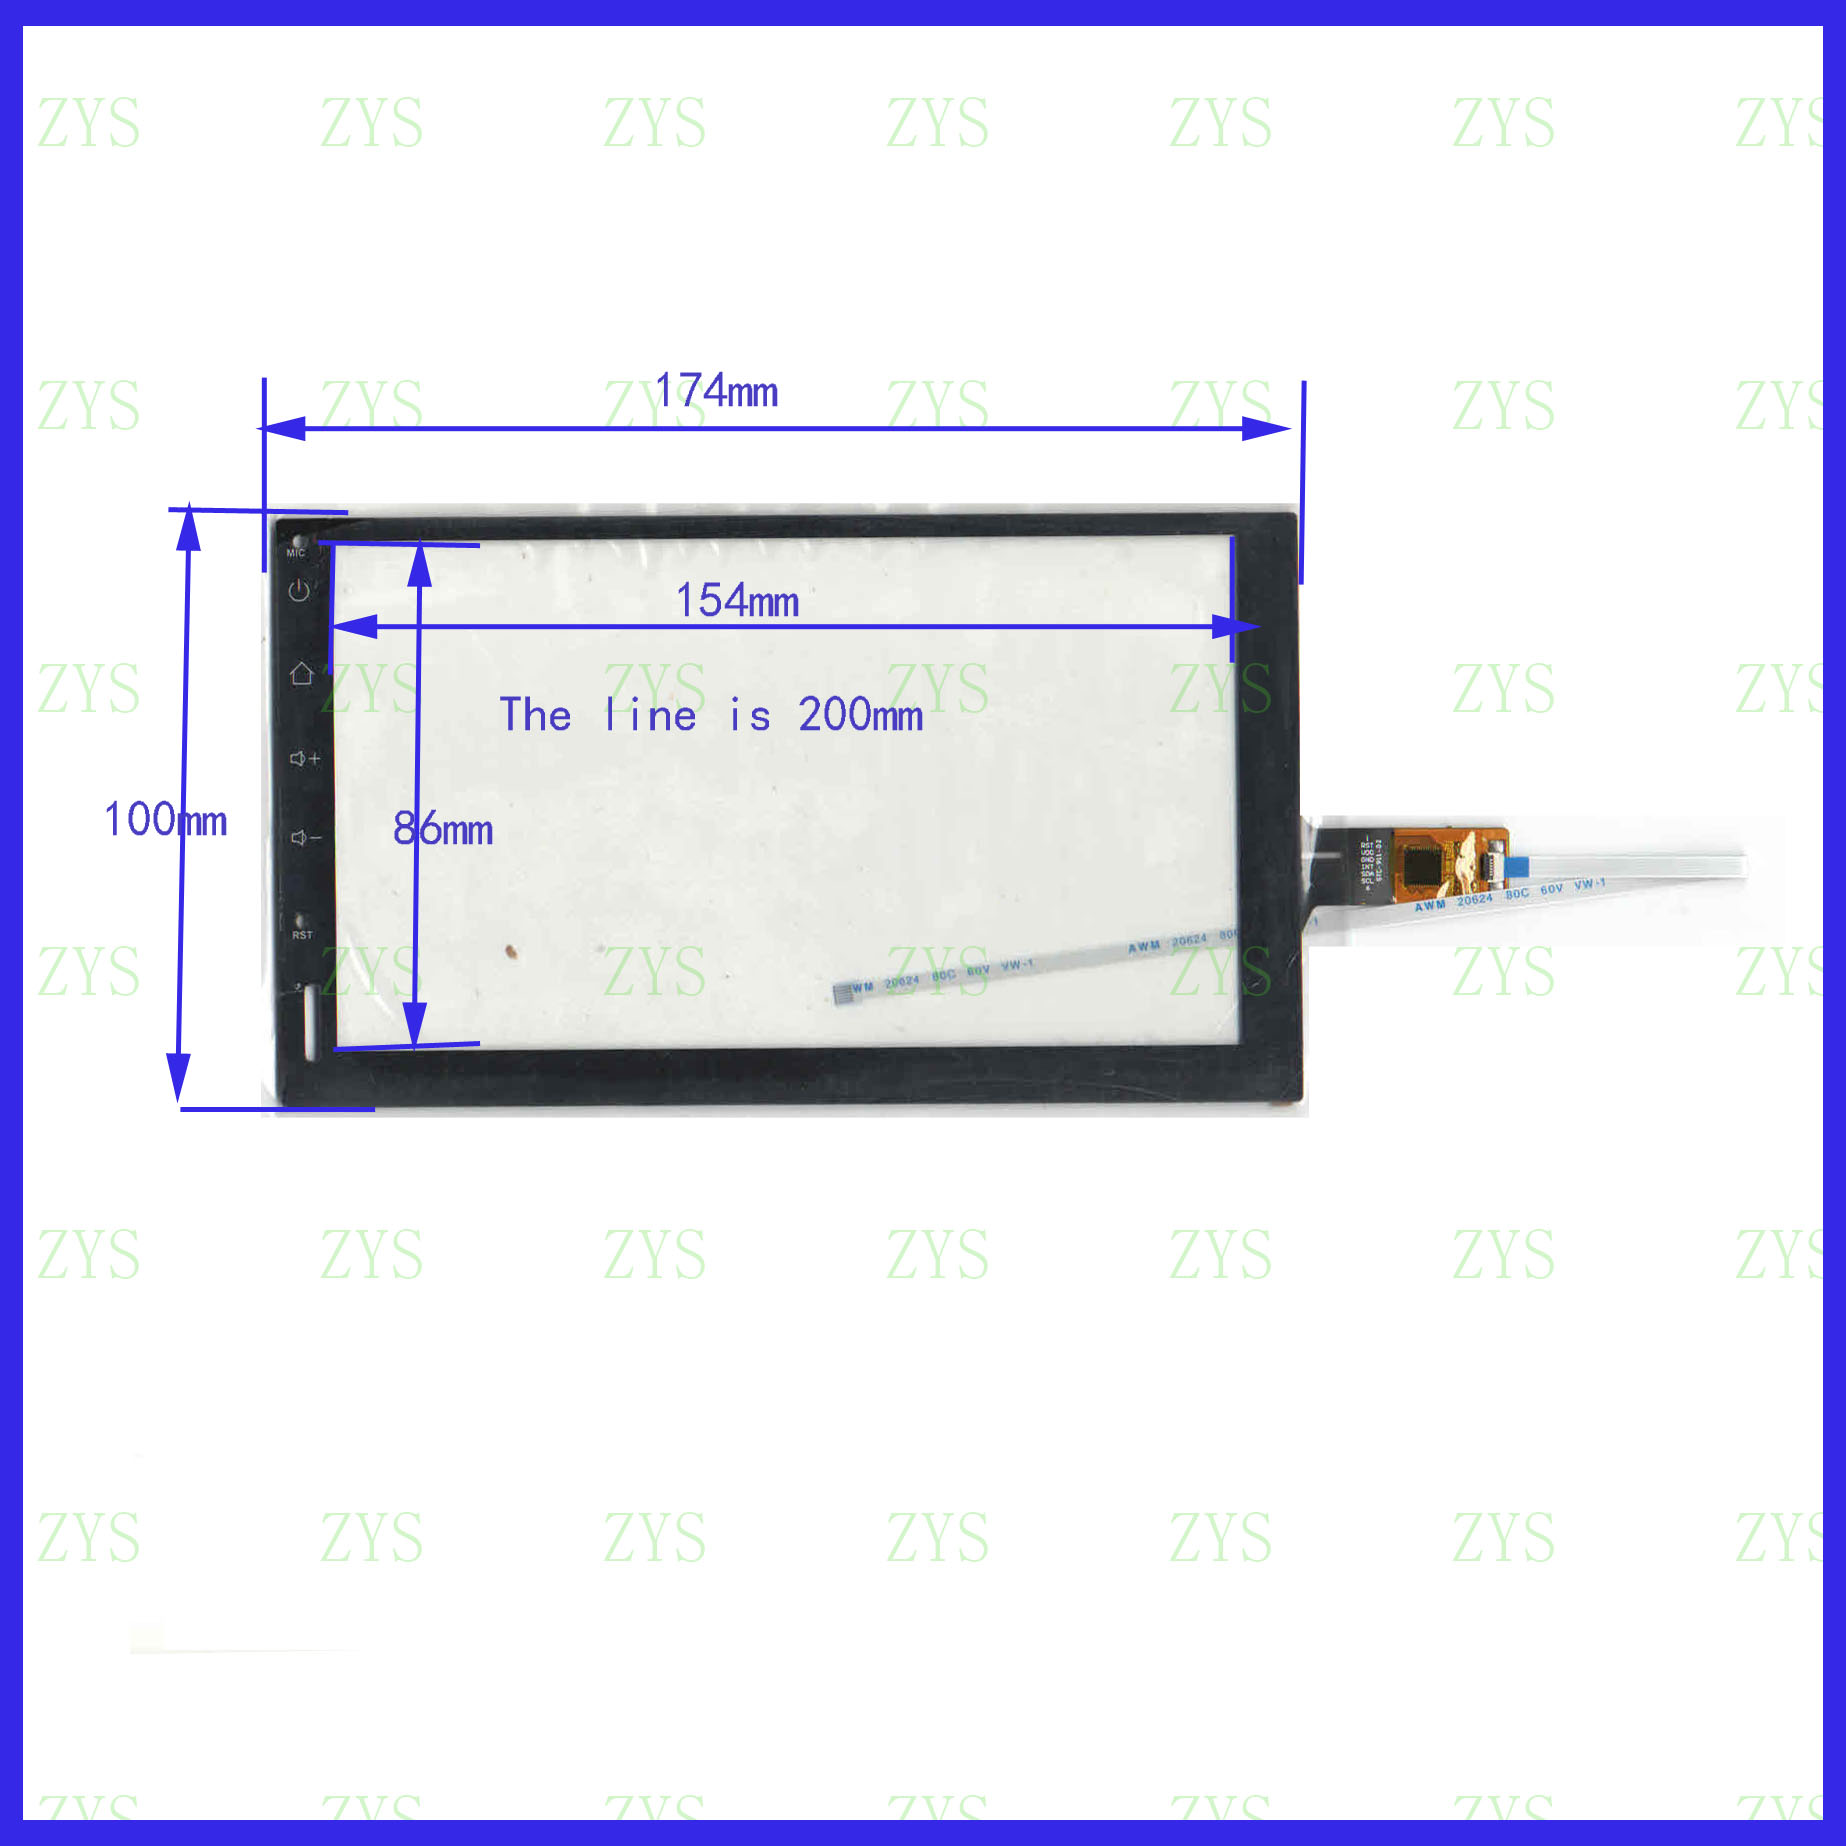 ZhiYuSun STC-911 NEW 7inch 174mm*100mm Touch Sensor  Panel 6 Use GPS DVD GT911 Overlay The Lines Is 200mm